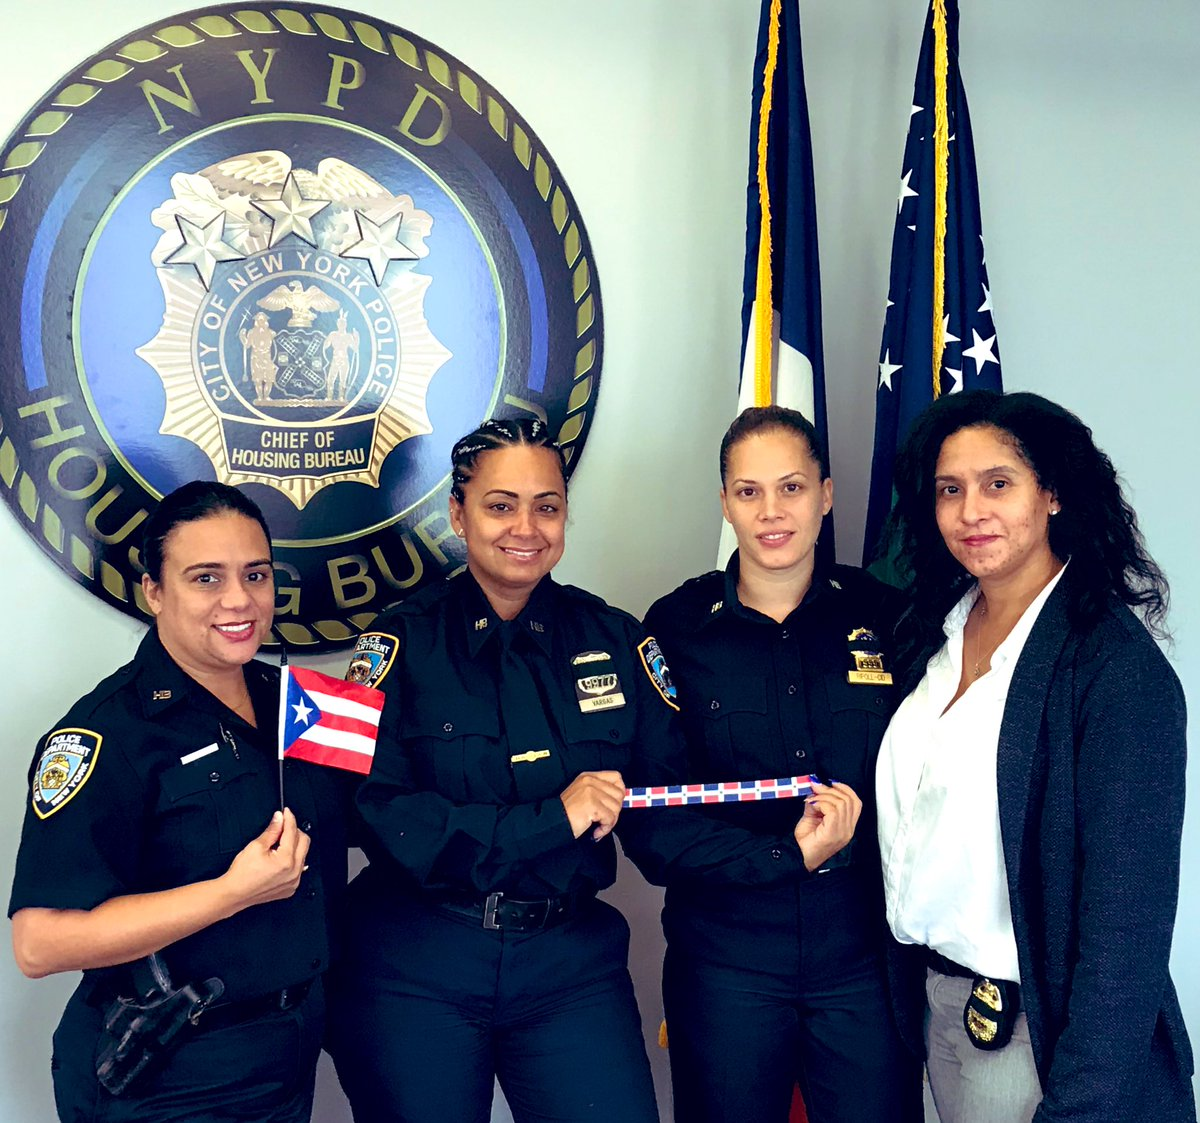 These officers bring over 65 years of law enforcement experience to the Housing Bureau. Thank you for your hard work and dedication. With backgrounds from Puerto Rico to the Dominican Republic we recognize them this #HispanicHeritageMonth2020 https://t.co/Qo1L3f9cxF